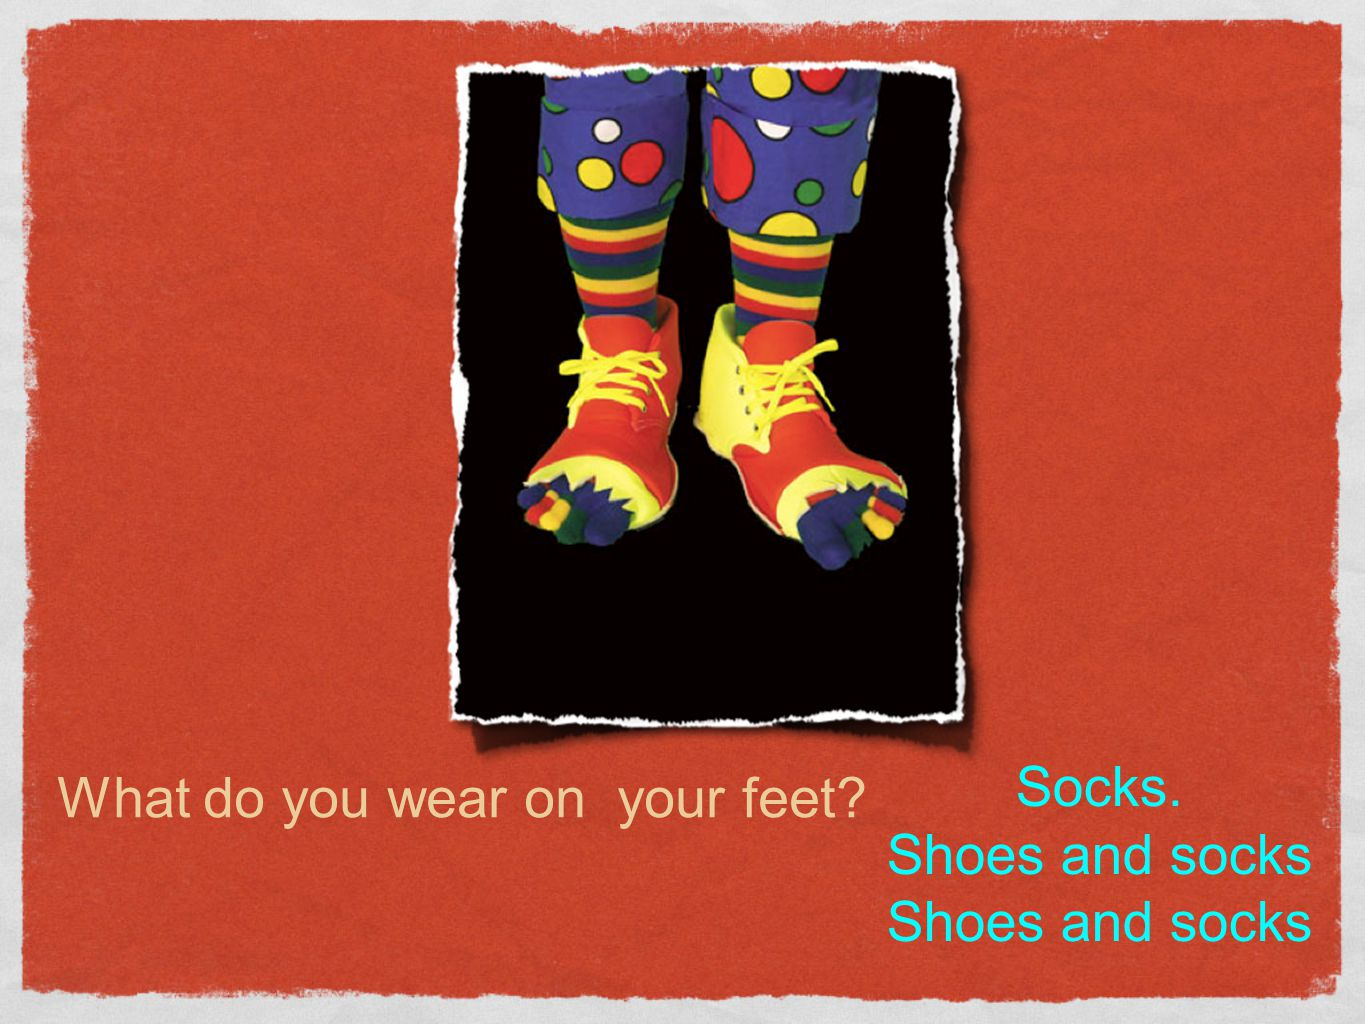 What do you wear on your feet? Socks. Shoes and socks